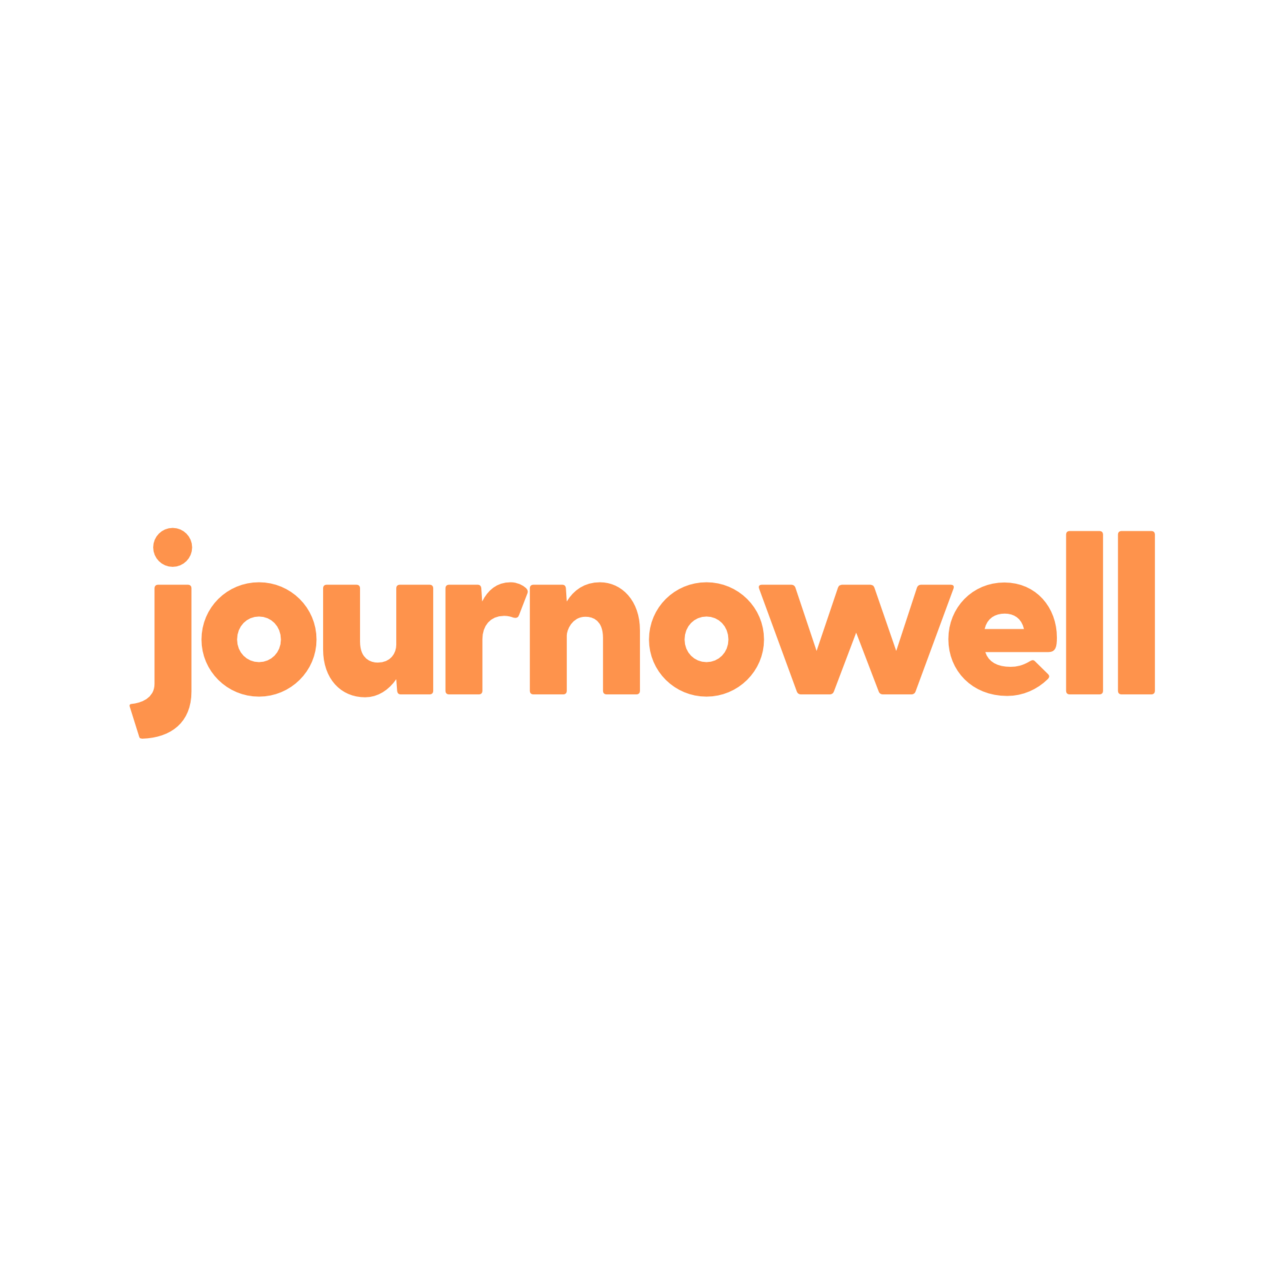 Journowell - Newsroom Mental Health